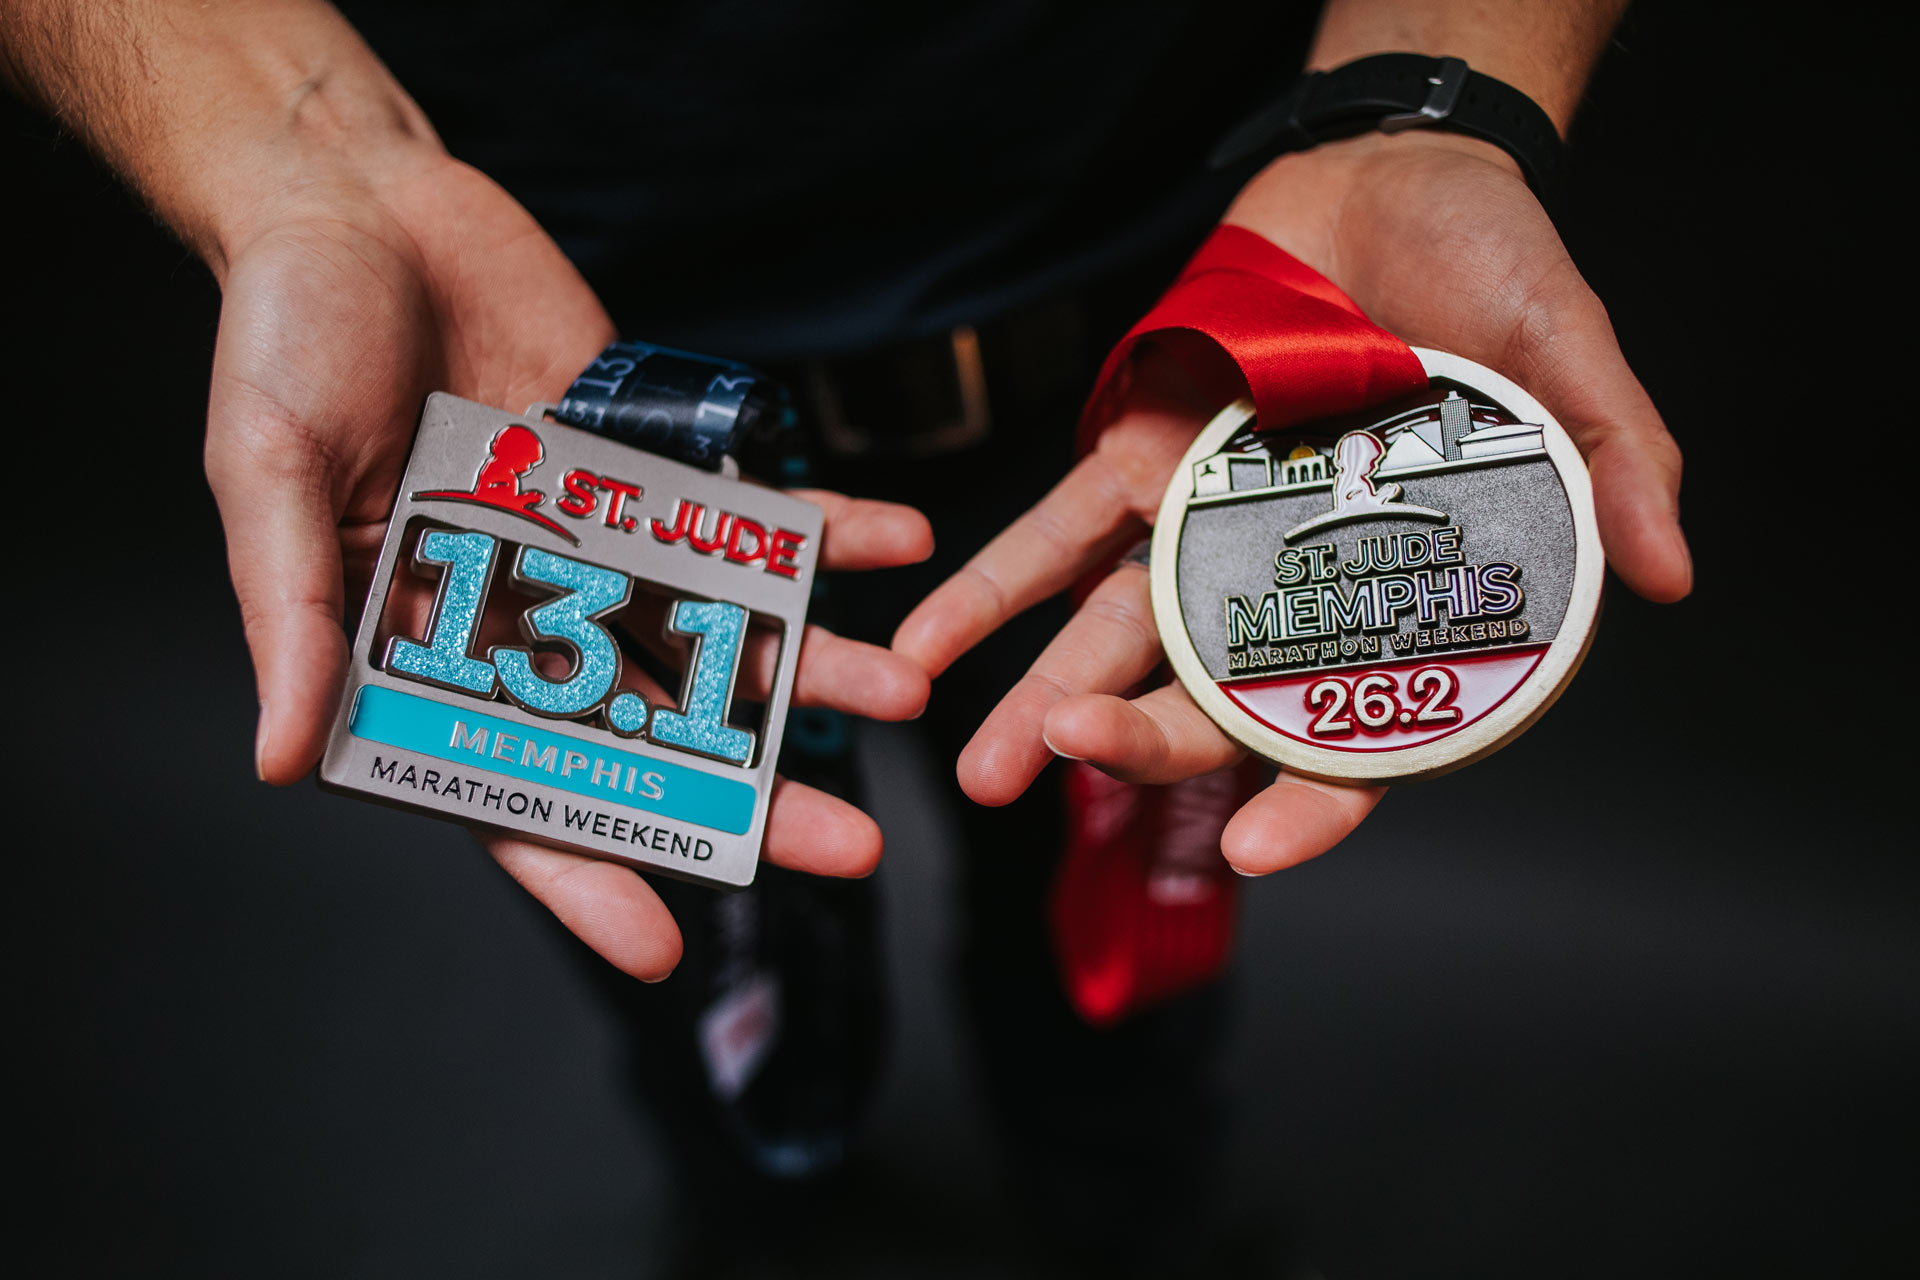 Trent holds out two medals in his hands. On his left hand is a silver medal from a St. Jude 13.1-mile half marathon, and on his right hand is a gold medal from a St. Jude 26.2-mile marathon.